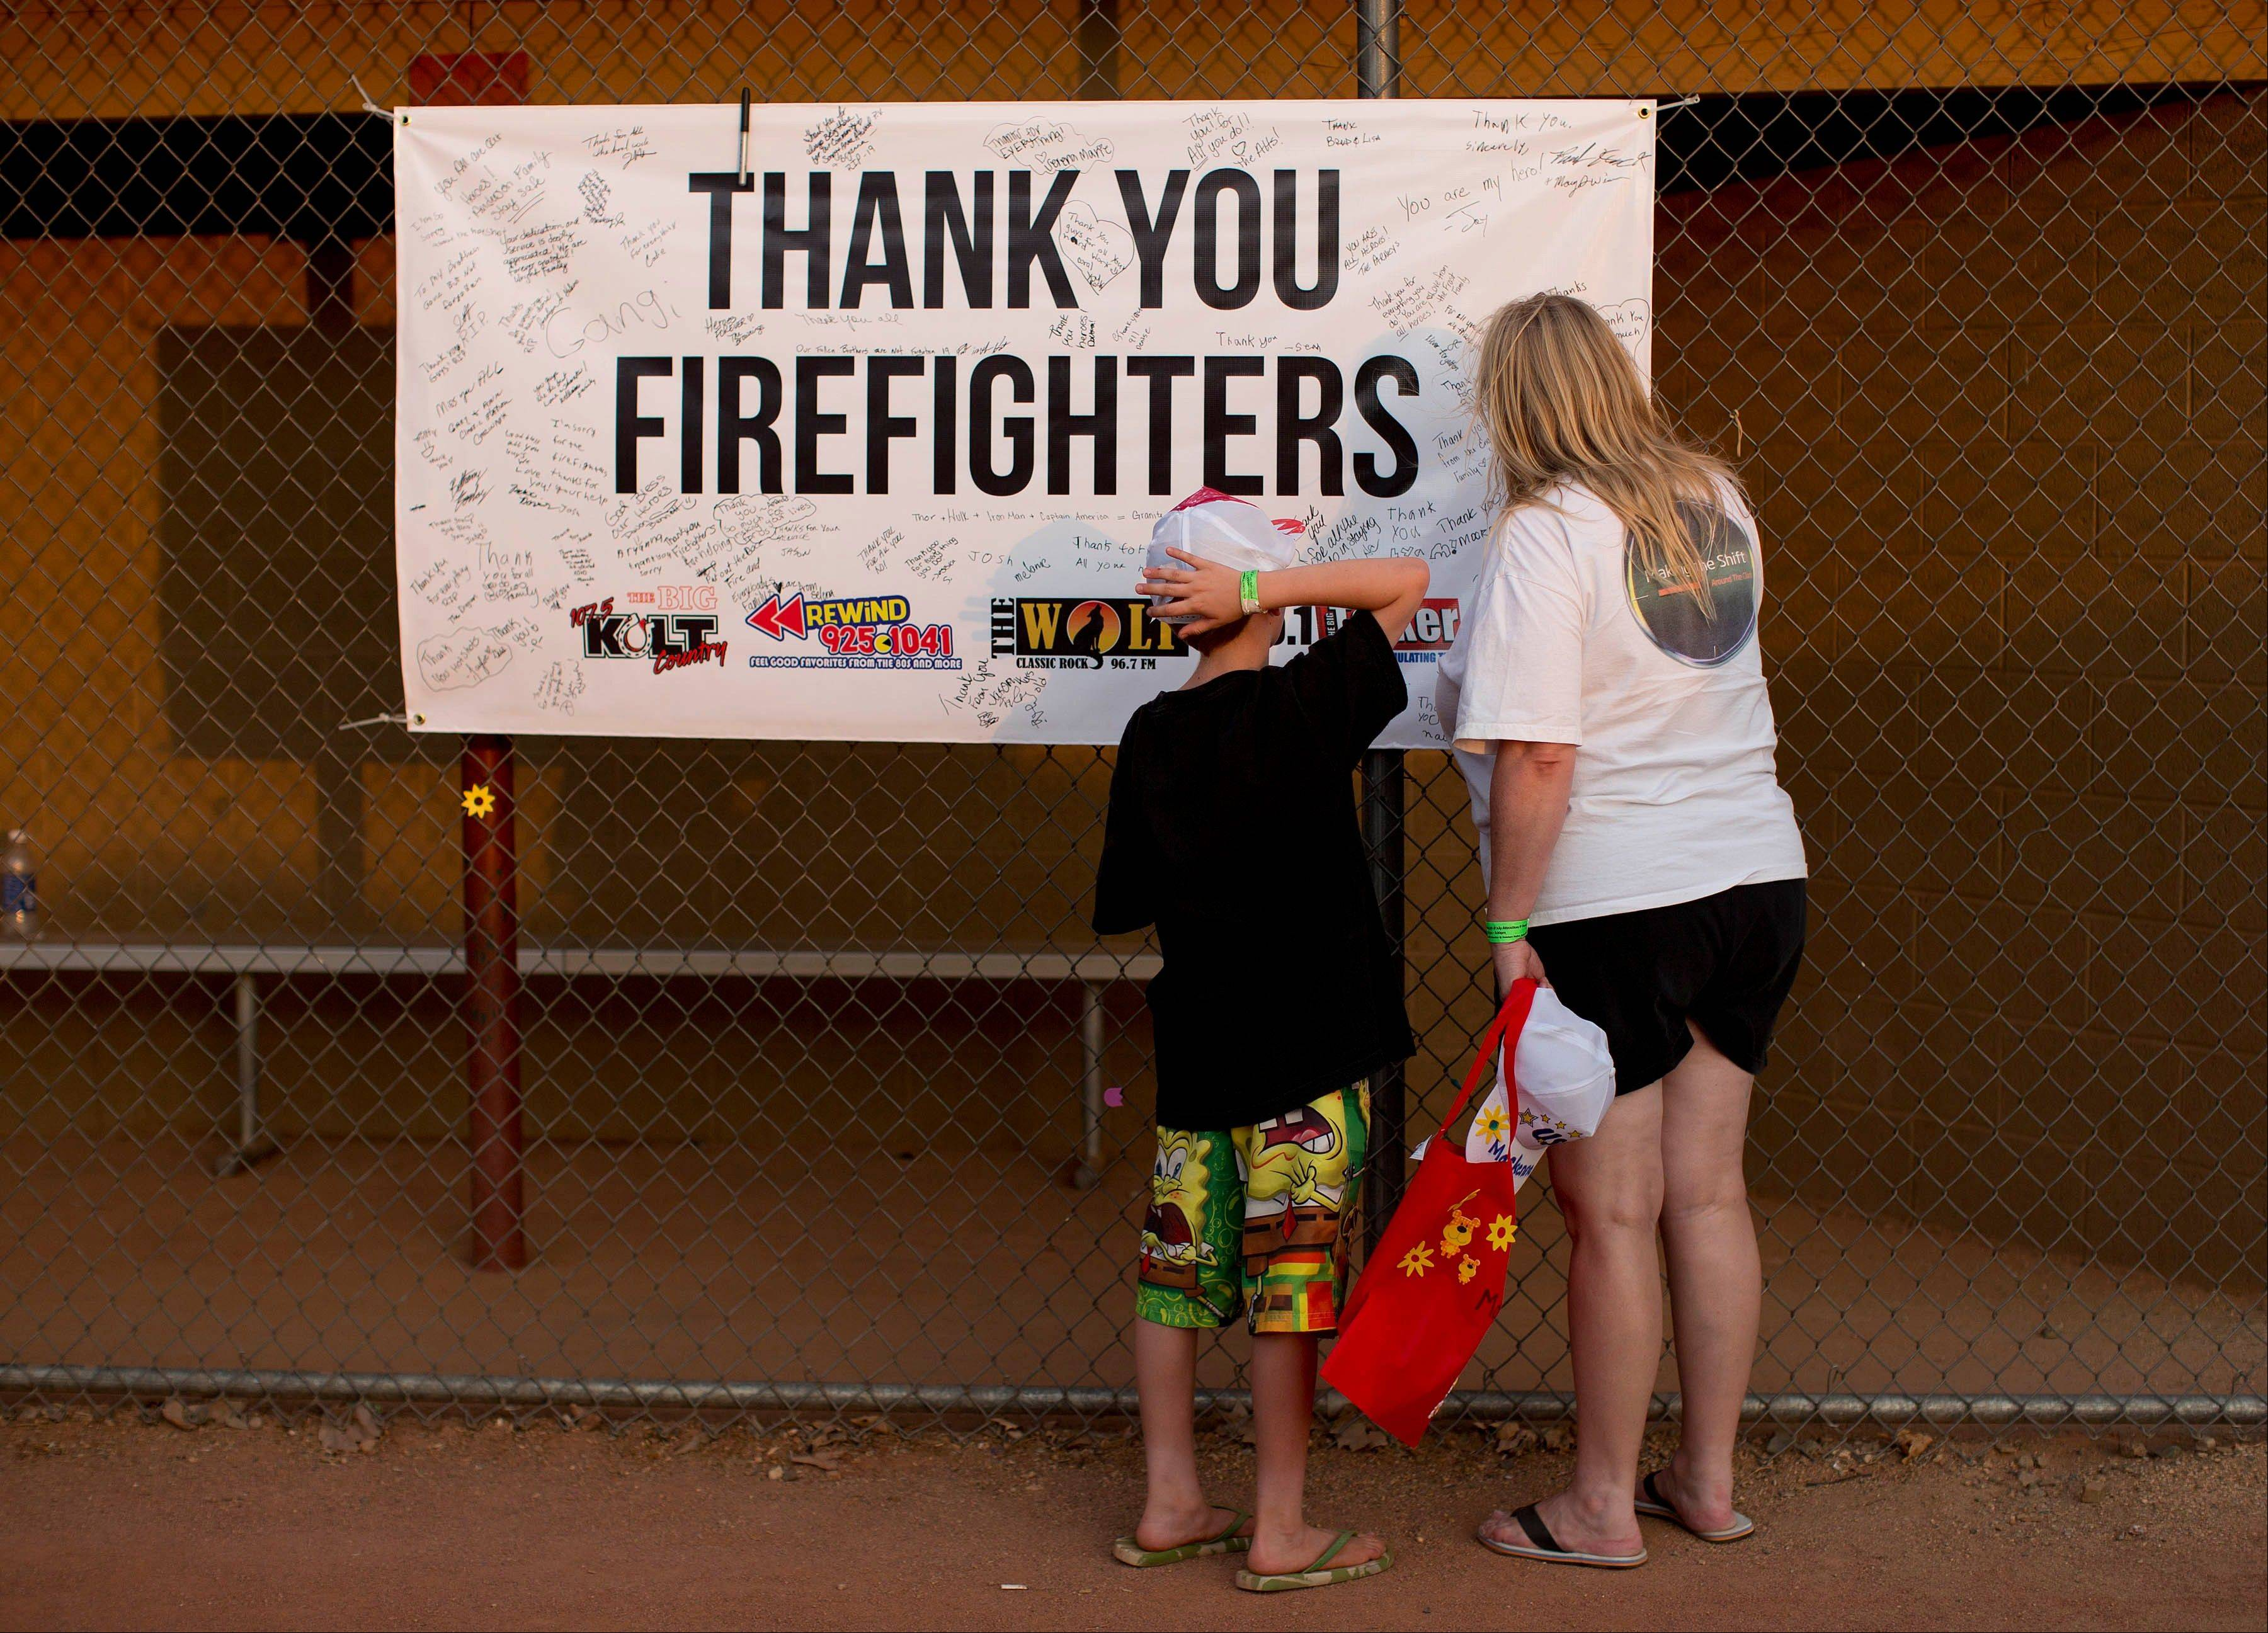 Ten-year-old Lyam Davis, left, watches as his mother, Rachel Davis, both of Phoenix, Ariz., sign a banner during the Fourth of July celebration at Pioneer Park, Thursday, July 4, 2013 in Prescott, Ariz. in honor of the 19 fallen Granite Mountain Hotshot firefighters who died fighting a blaze near Yarnell, Ariz. on Sunday.